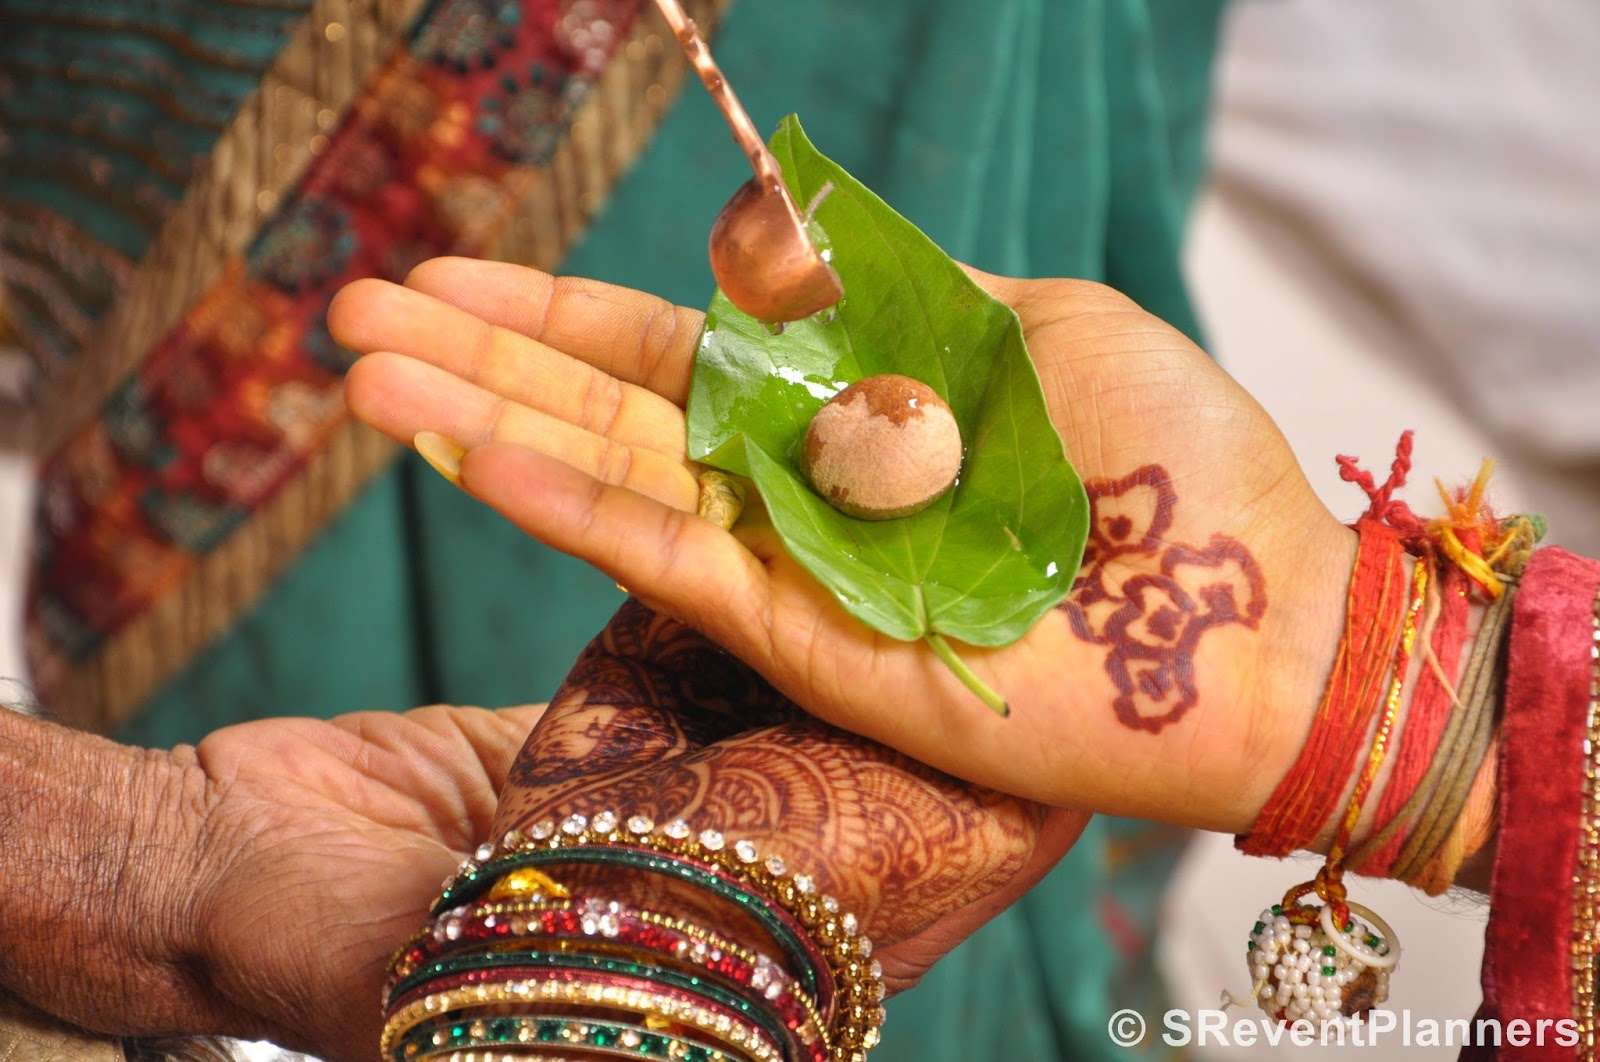 DSC 0443 - 7 Vachan : 7 Promises in traditional Indian wedding